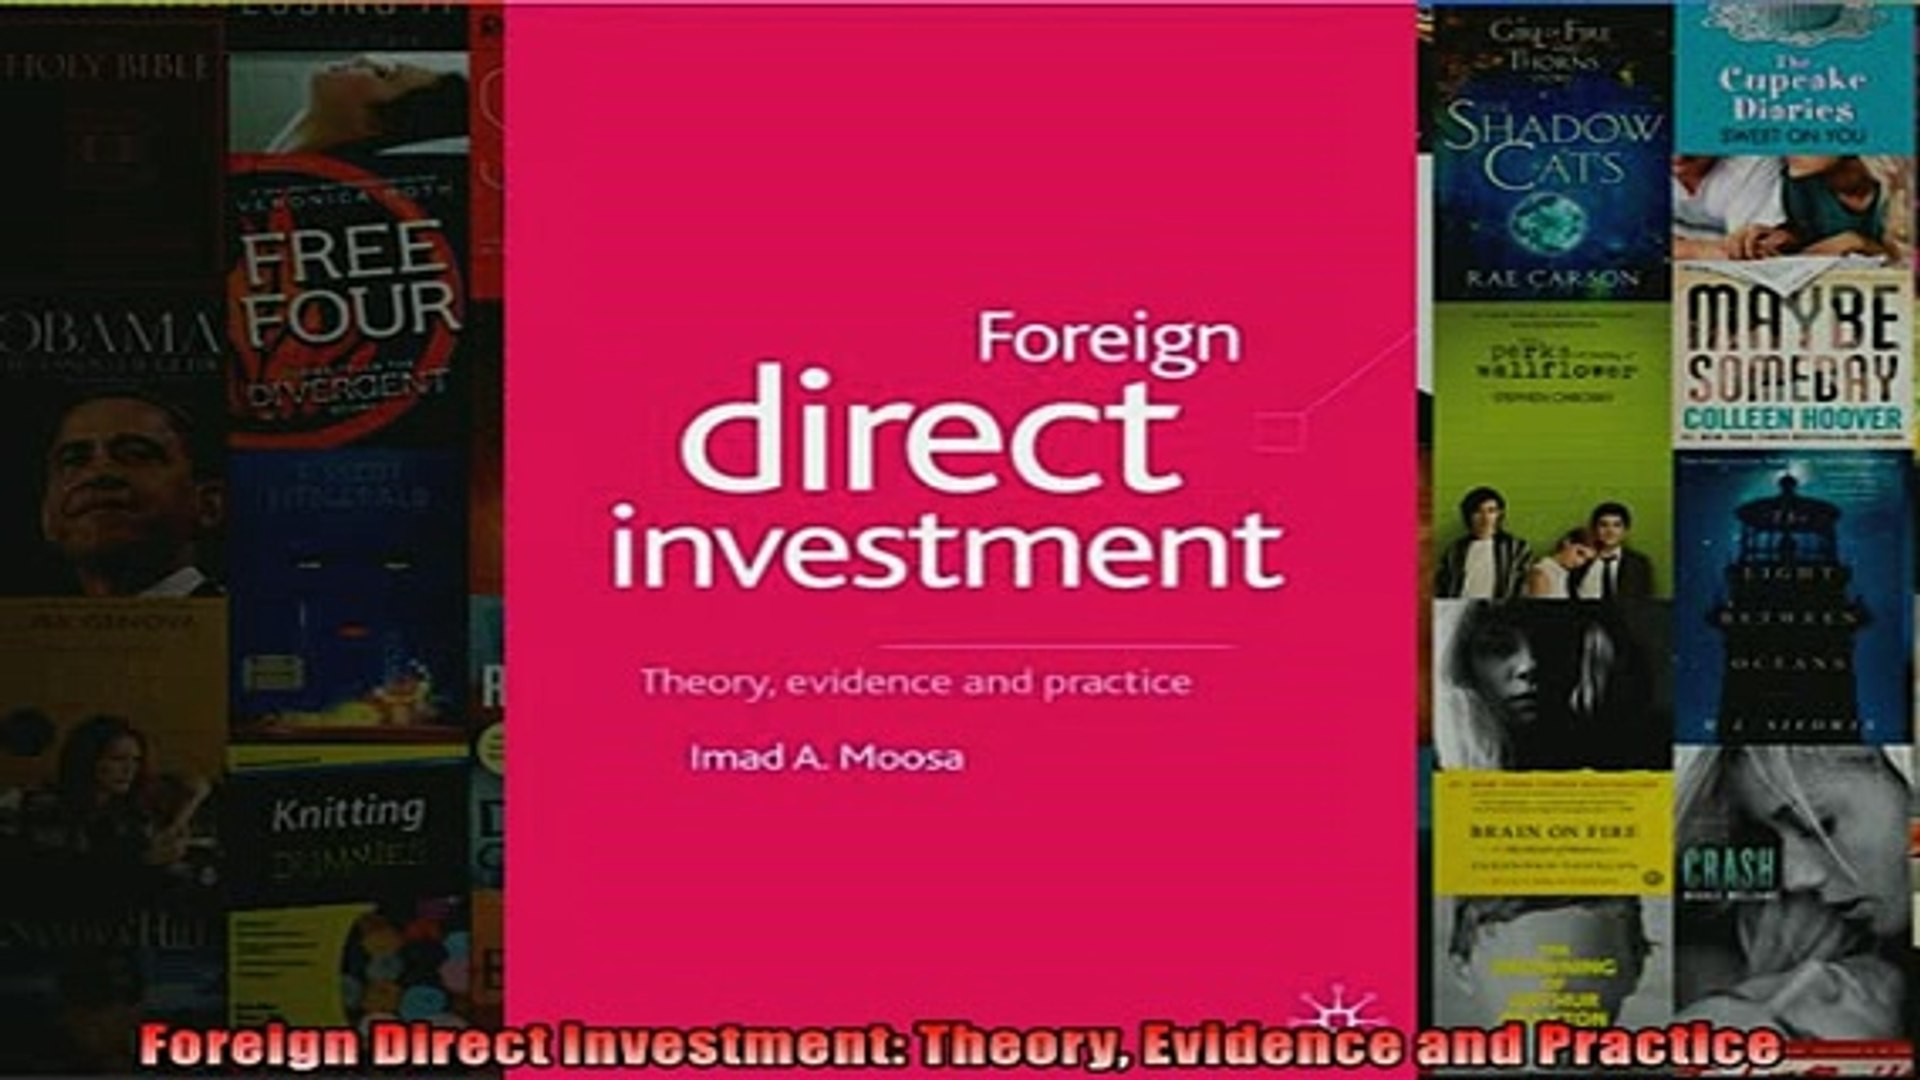 foreign direct investment theory evidence and practice by imad a. moosa